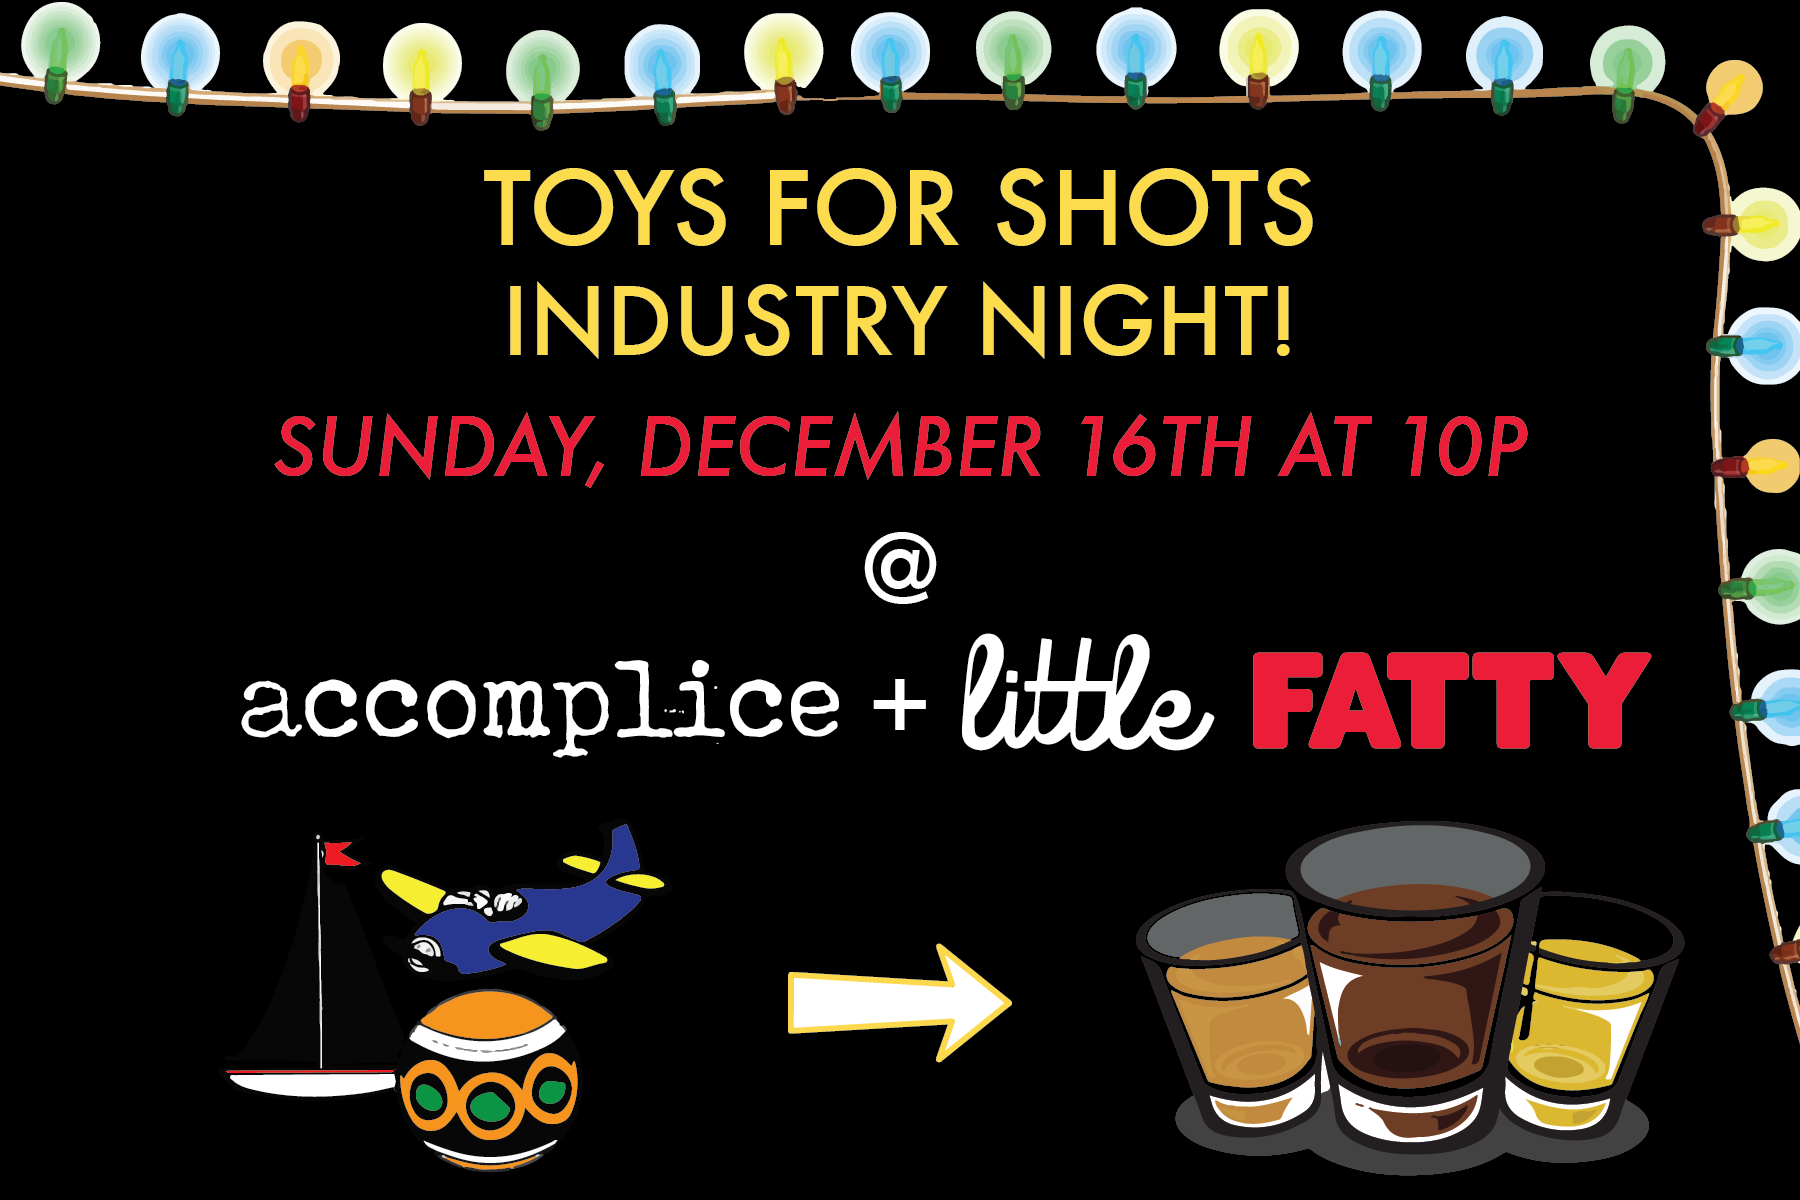 Accomplice + Little Fatty Industry Night